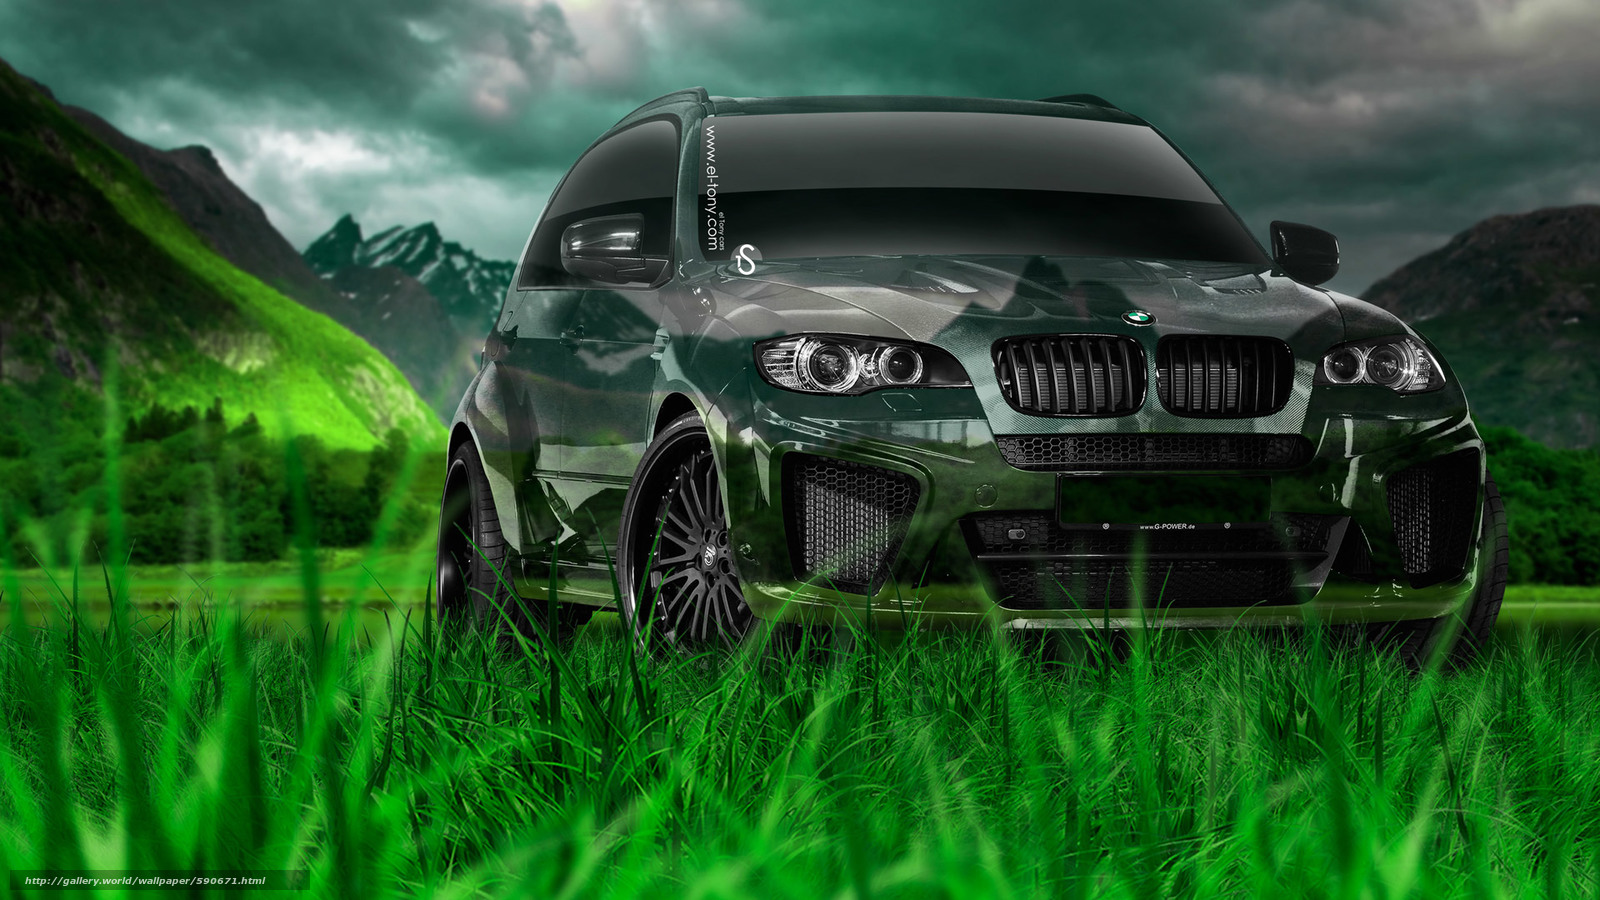 Download wallpaper Tony Kokhan,  BMW,  X5,  Crystal free desktop wallpaper in the resolution 1920x1080 — picture №590671